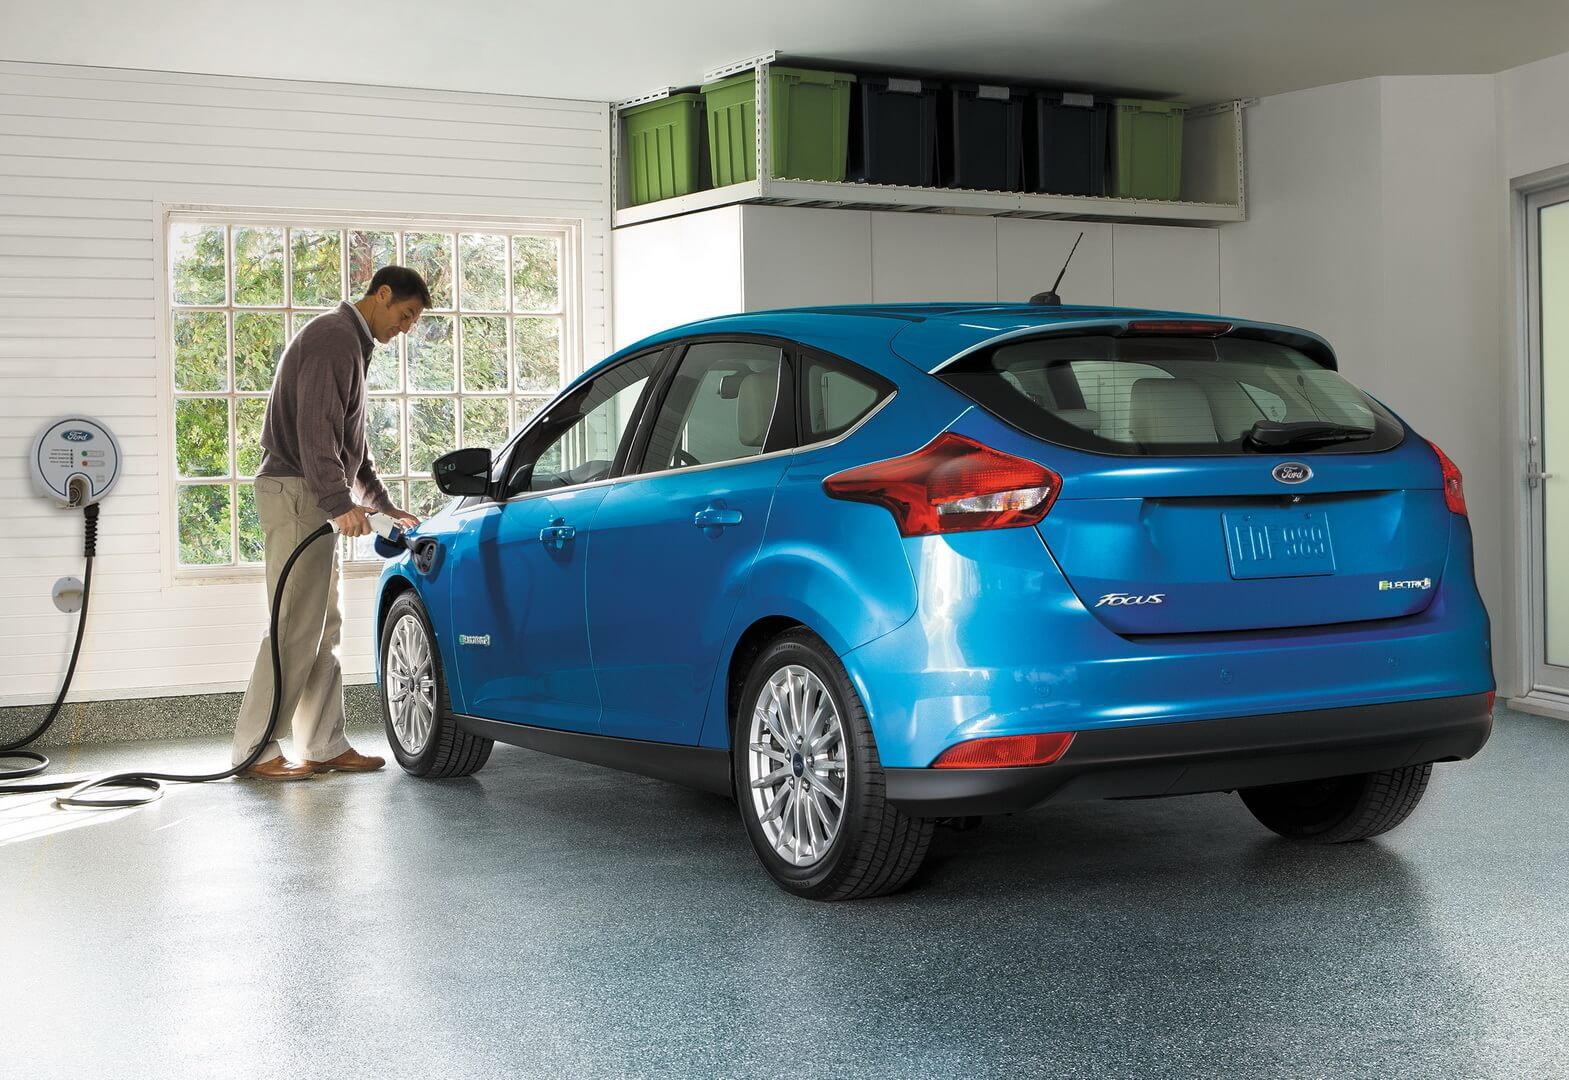 Ford Focus Electric 34kwh-exterior-11